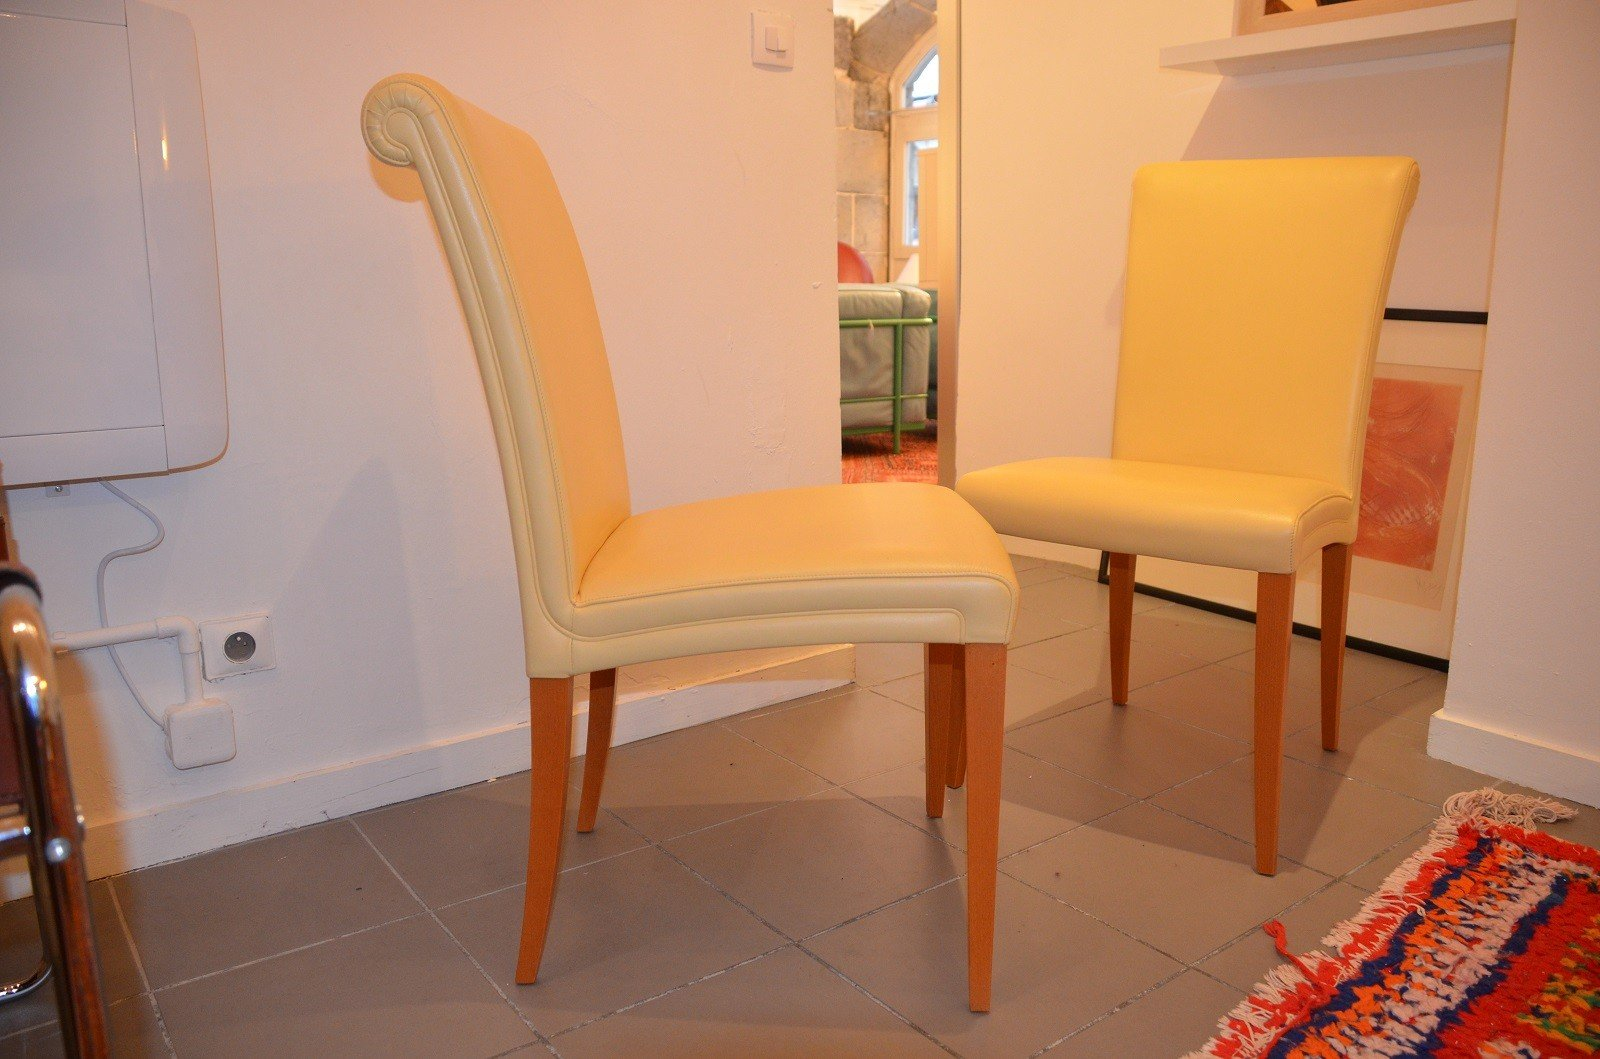 Leather sofa by poltrona frau at 1stdibs - Vintage Vittoria Yellow Leather Chairs From Poltrona Frau Set Of 6